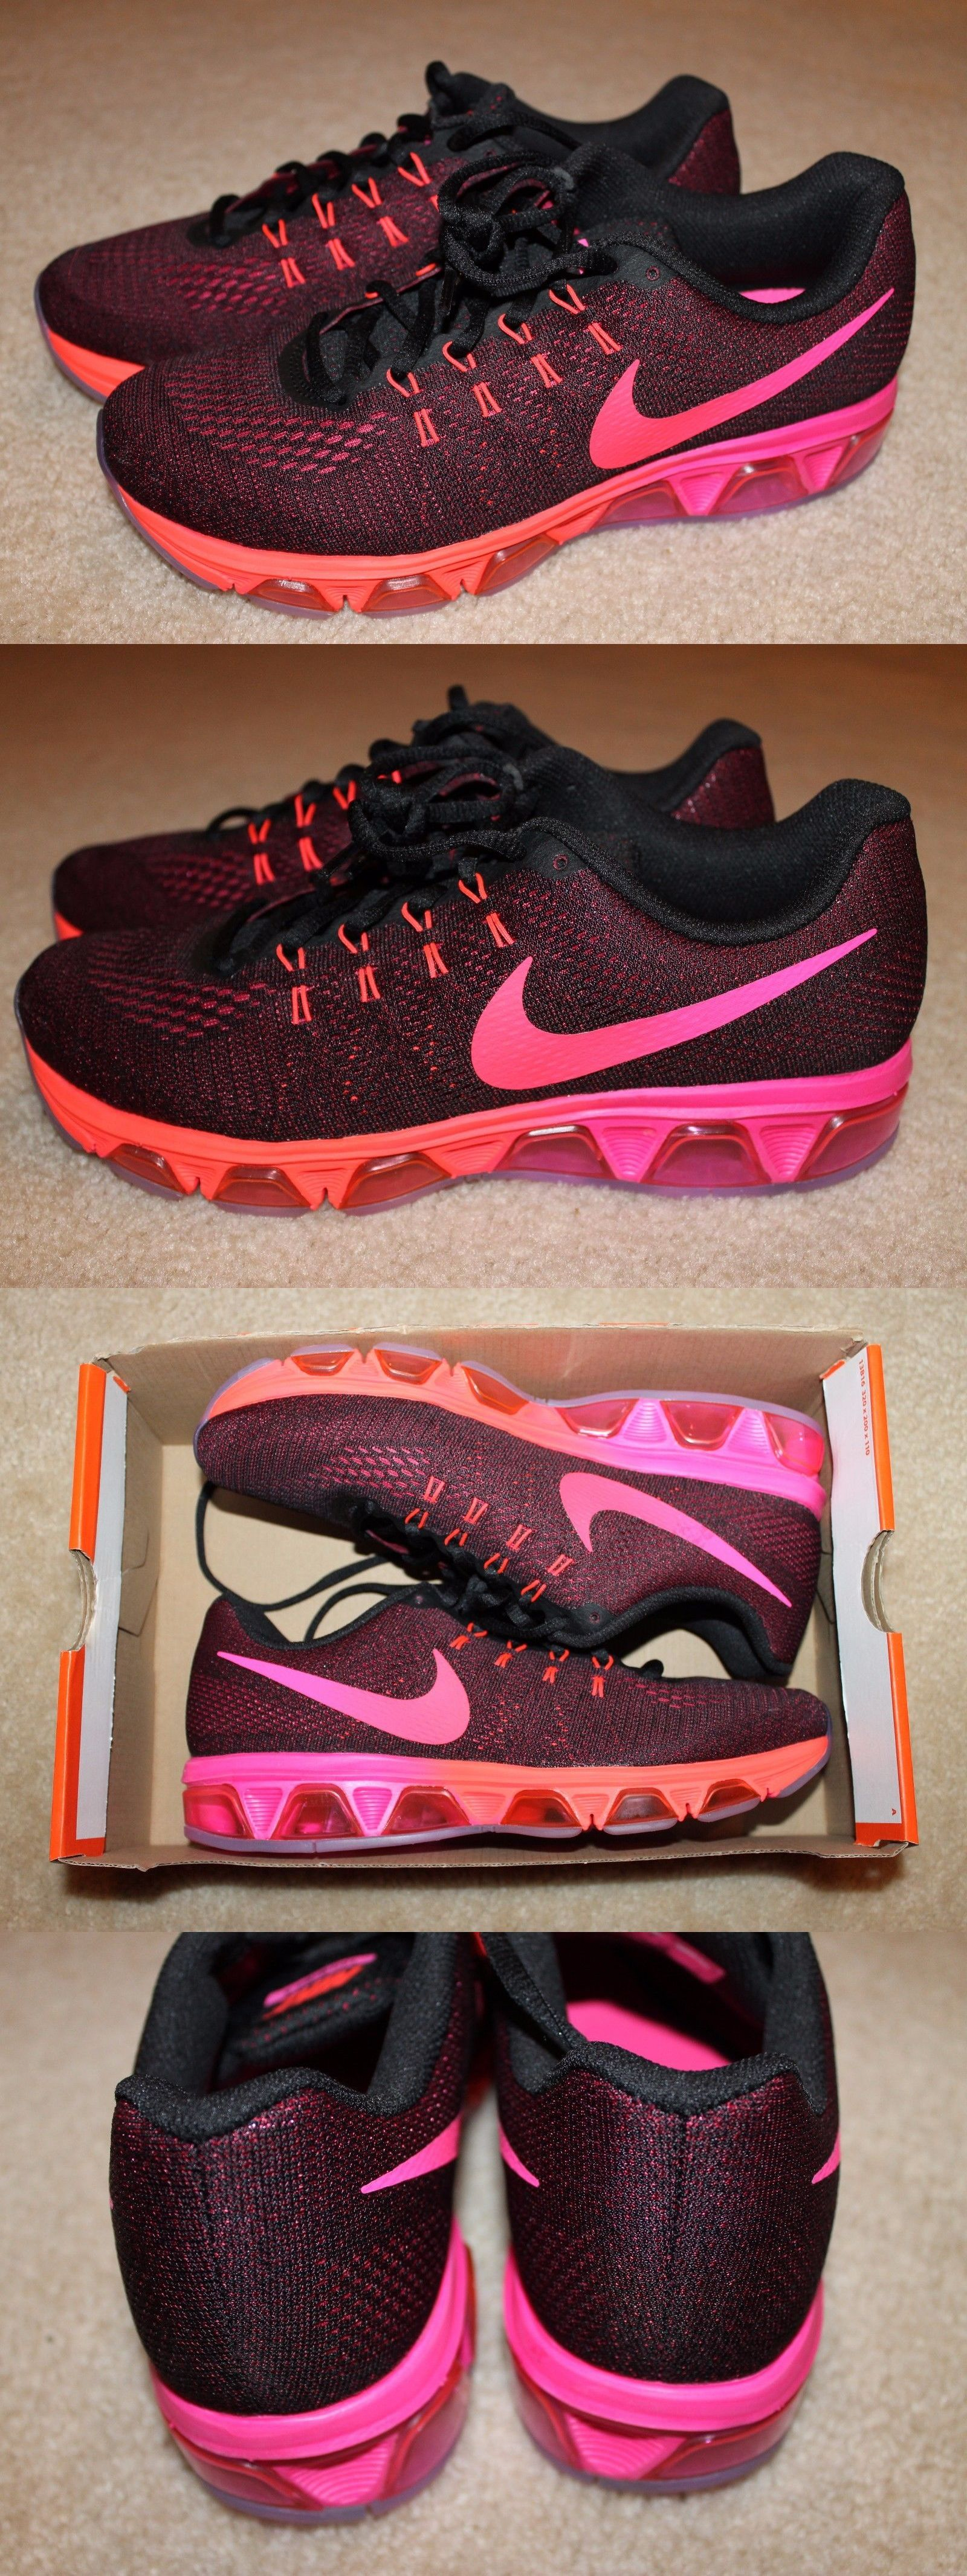 37bba5ca96ee0 ... usa athletic 95672 women s nike air max tailwind 8 running shoes black  pink size 9.5